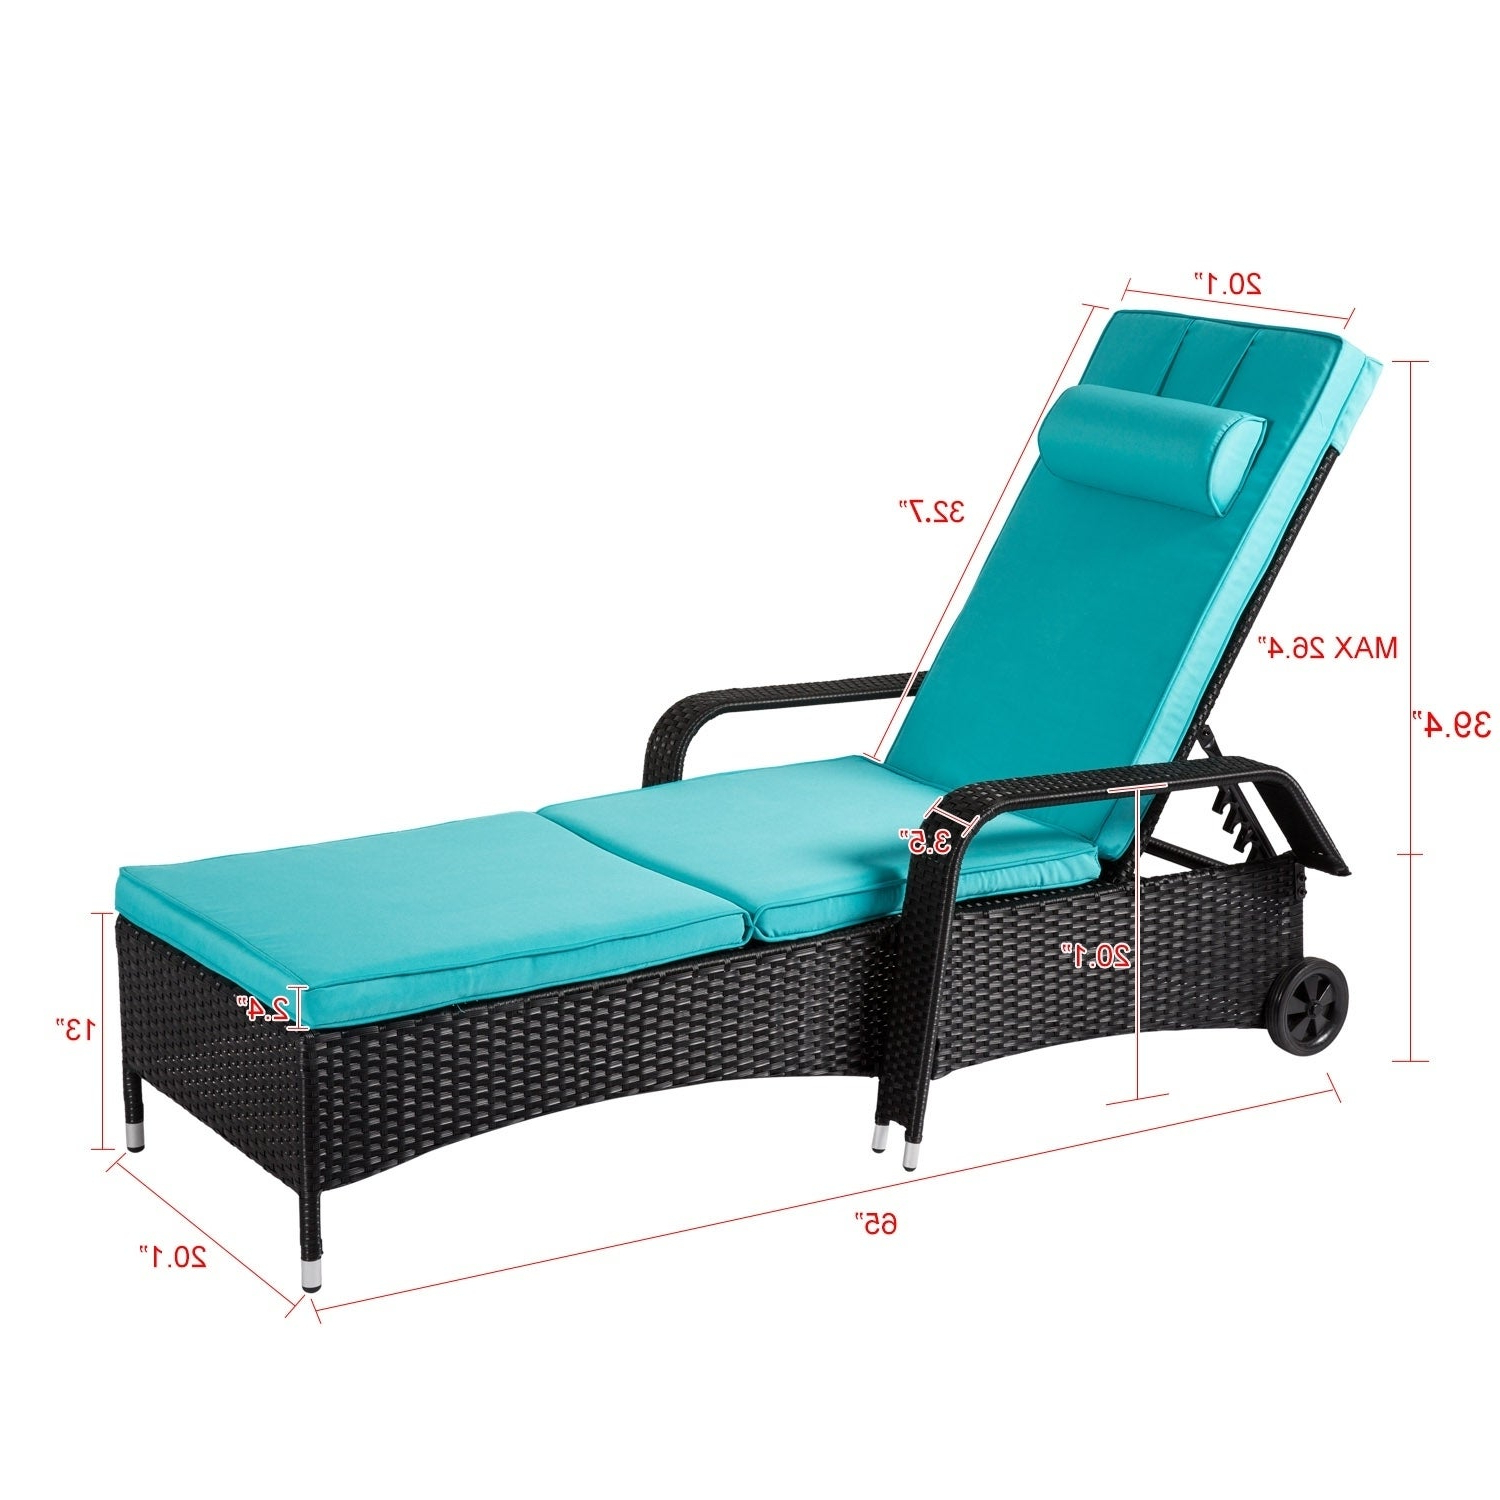 Current Kinbor Outdoor Adjustable Wicker Chaise Lounge Chair Reclining Chaise Chair  Patio Furniture W/cushions Intended For Outdoor Adjustable Reclining Wicker Chaise Lounges (View 4 of 25)